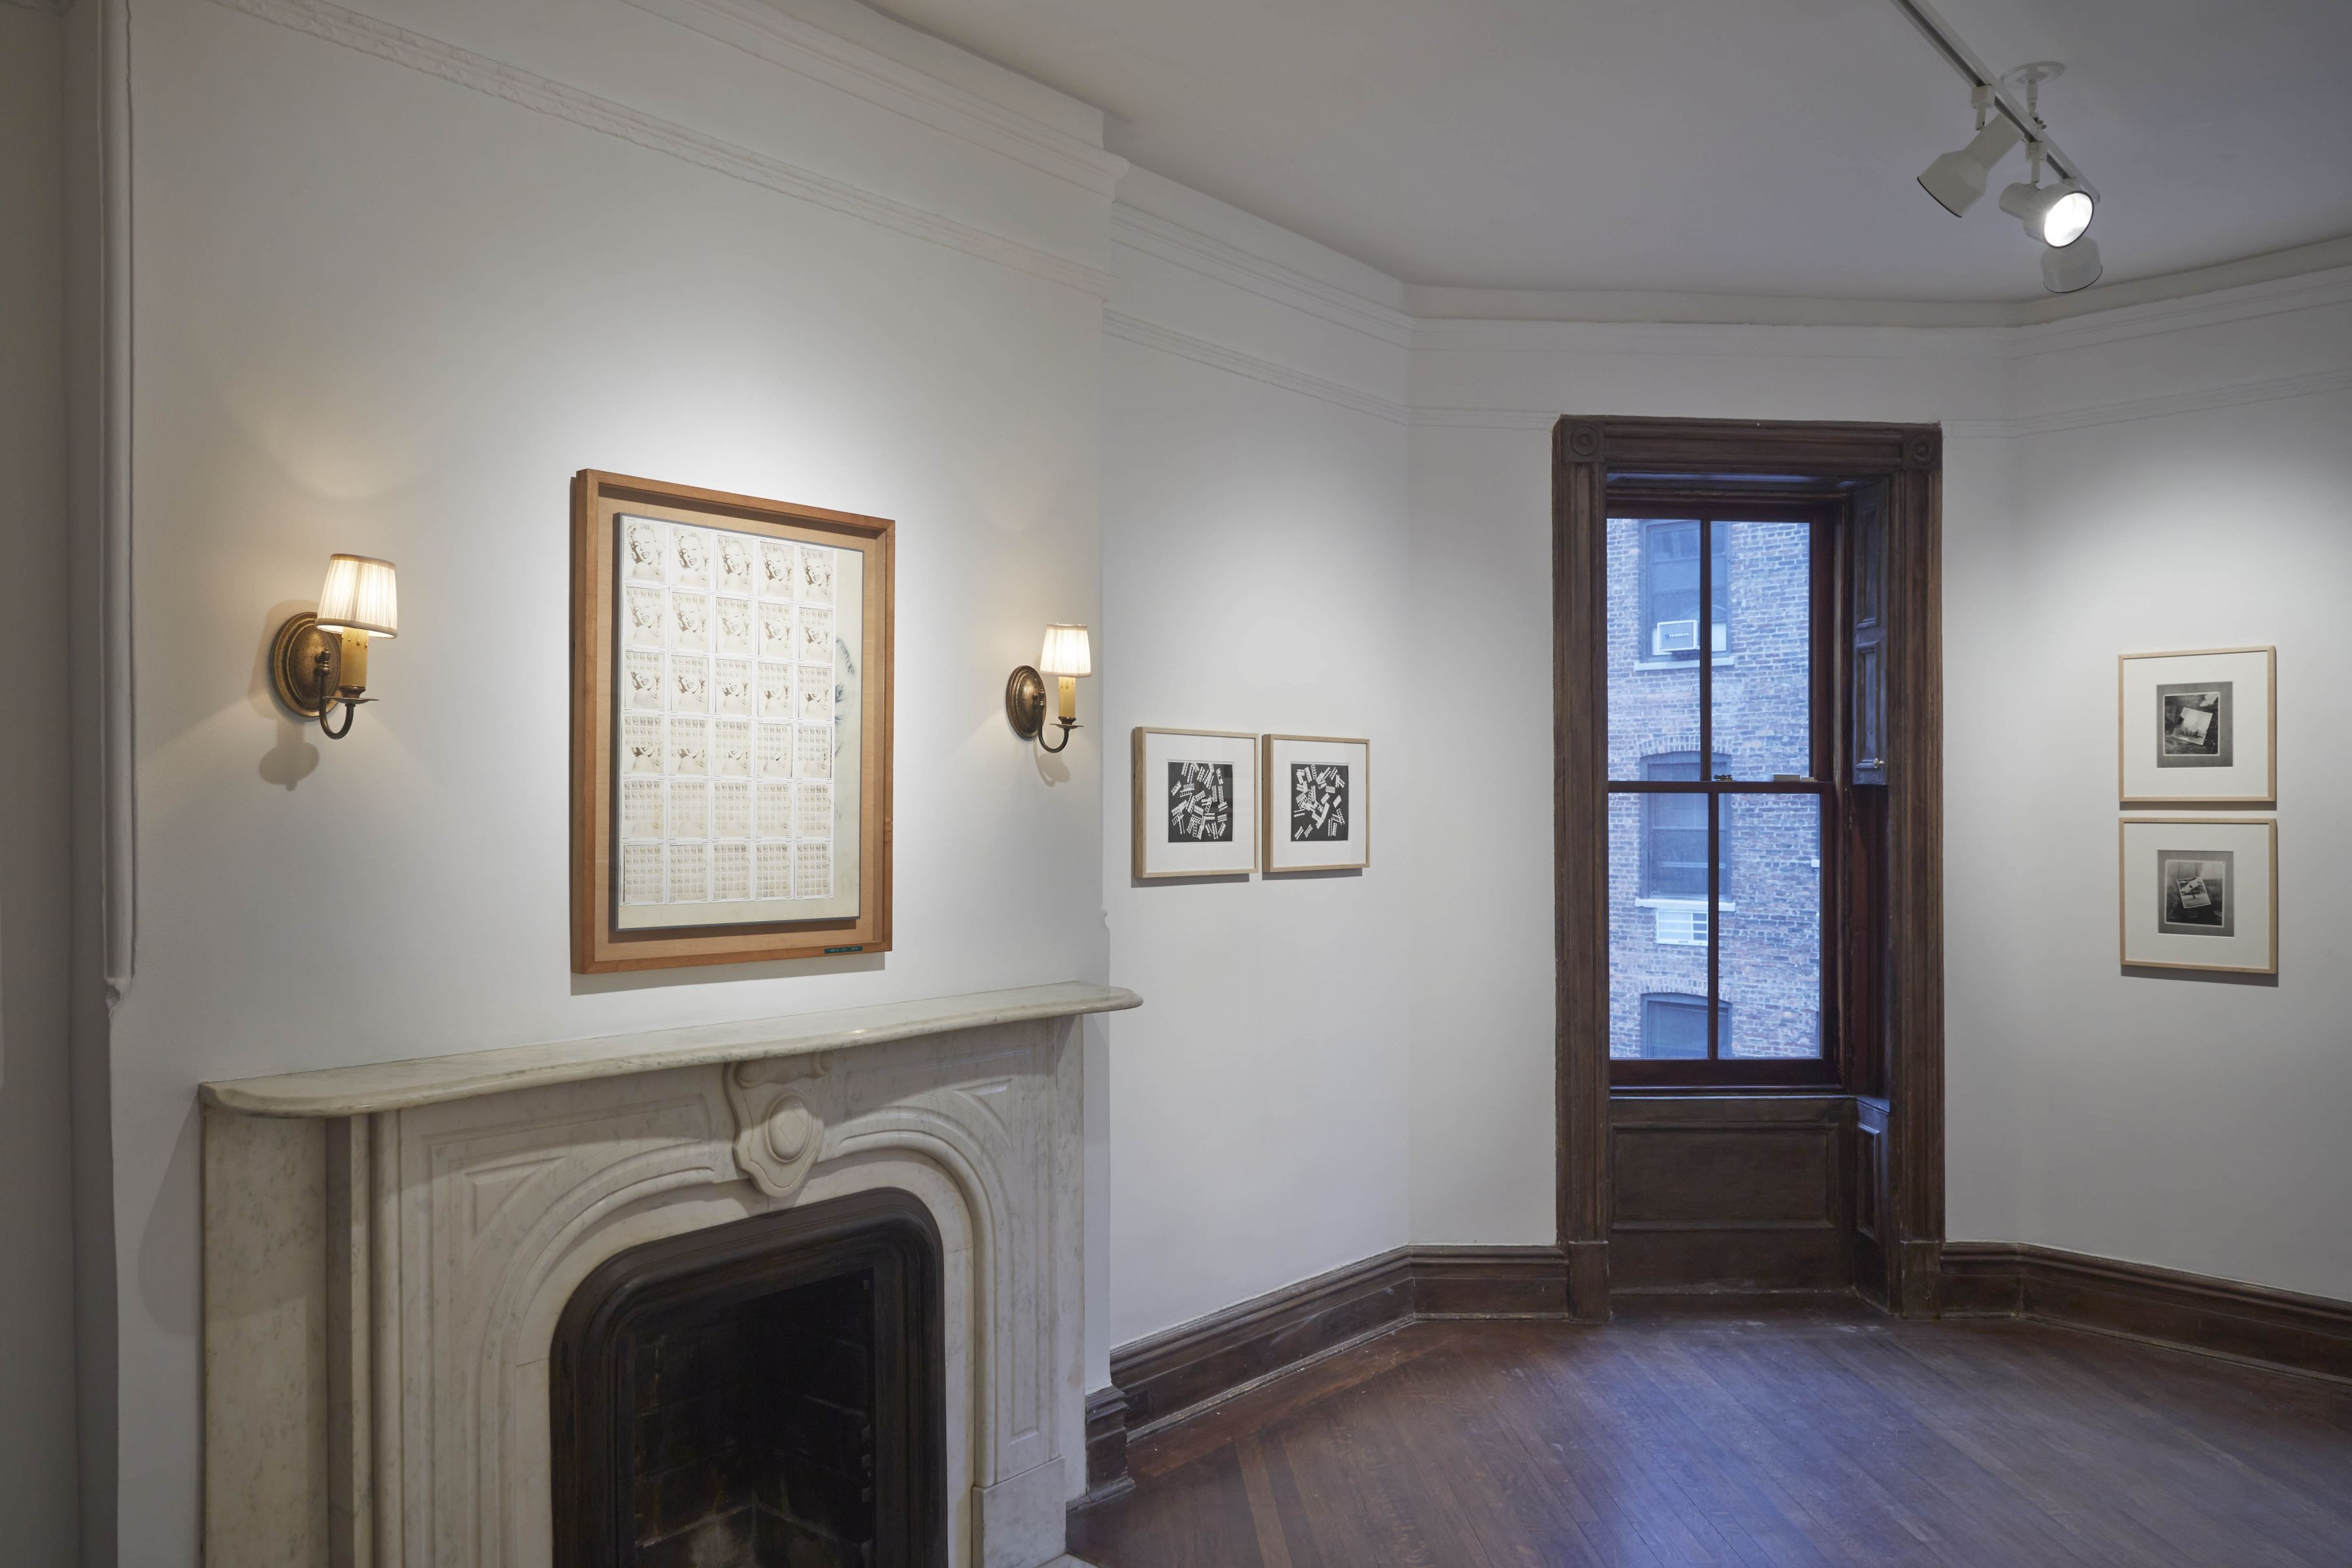 Image and Matter in Japanese Photography from the 1970s (Installation View), Marianne Boesky Gallery, 2014